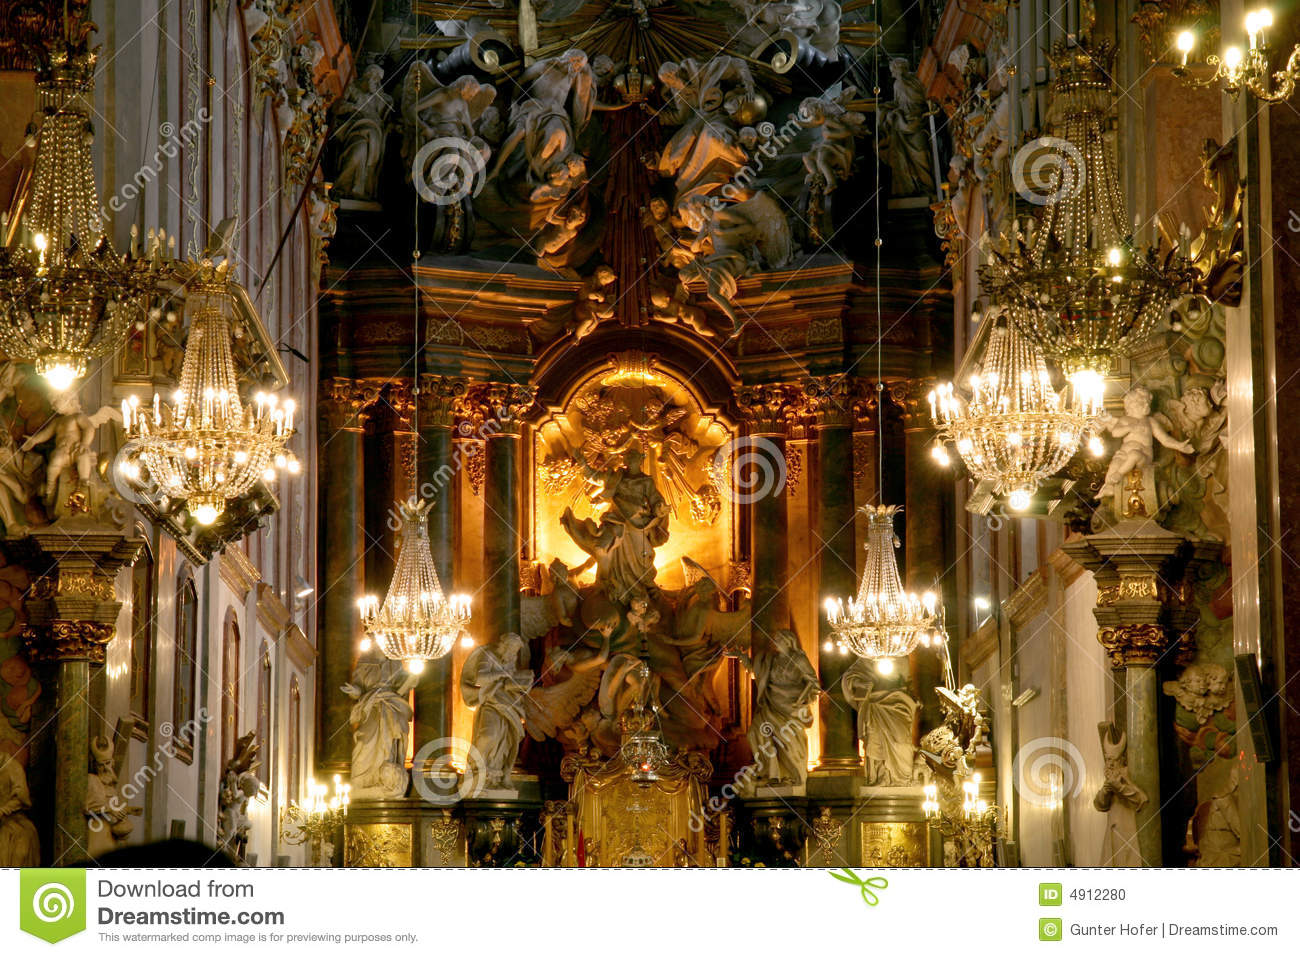 rather nice monastery in southern Poland showing the interior where ...